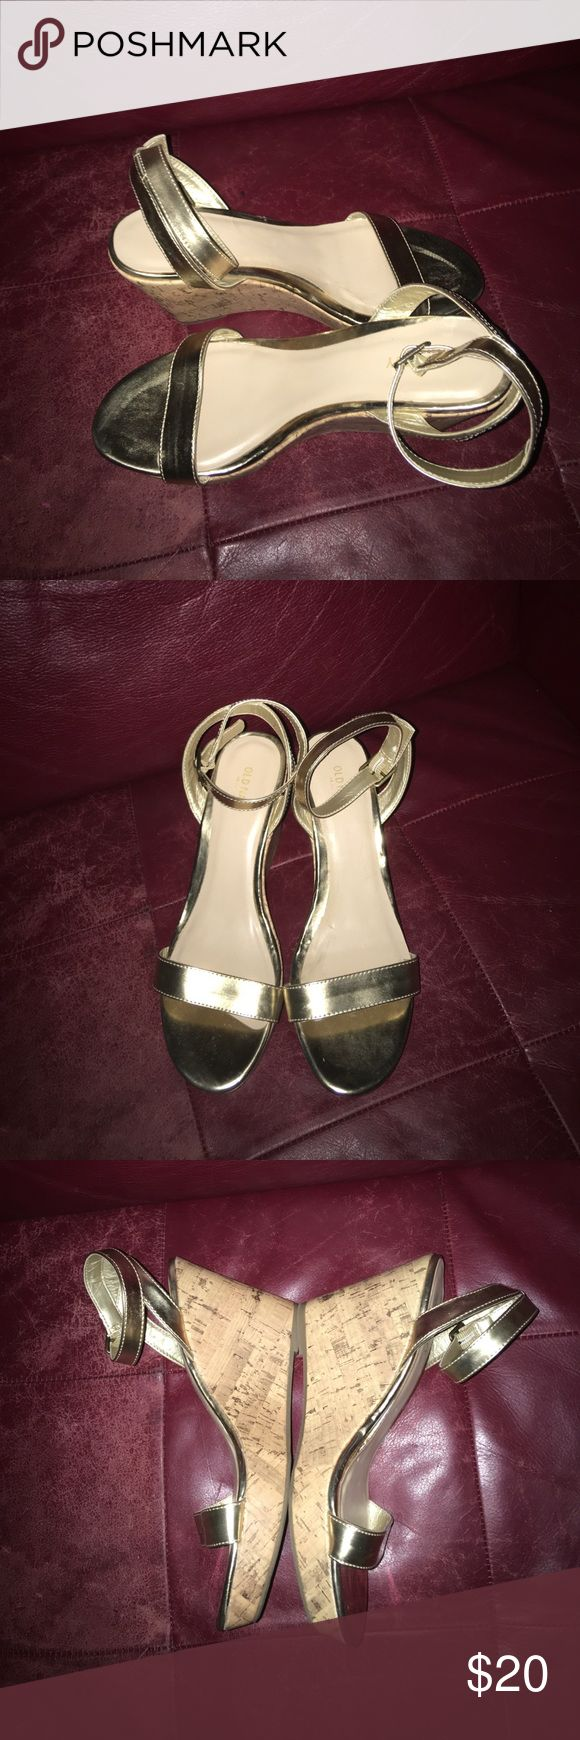 """Old Navy Gold Wedges Beautiful Gold Old Navy Wedge Sandals in EUC 4"""" wedge heels Shoes Wedges"""